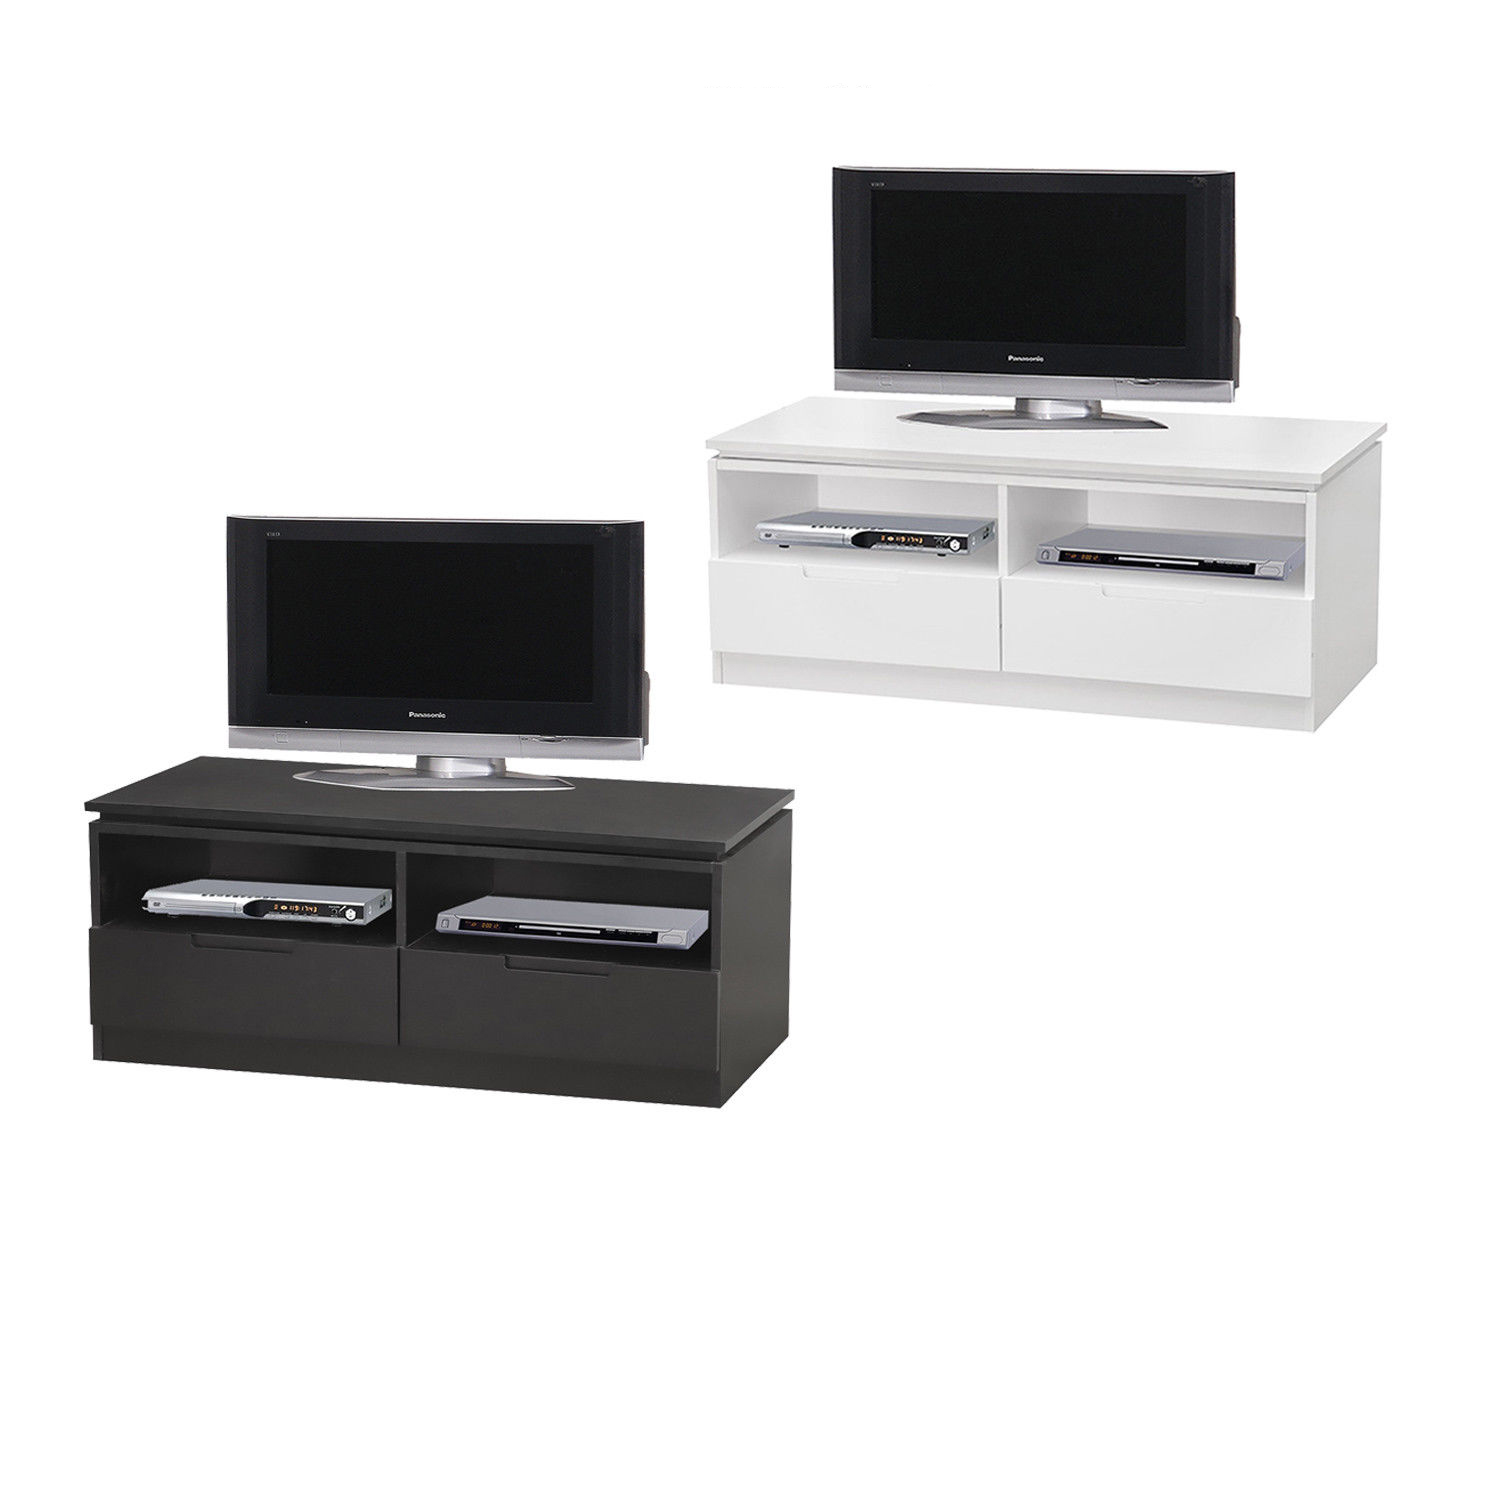 new style 576d0 807ba Details about Orb TV Cabinet with 2 Drawers and Shelves - 100cm Wide -  Black or White